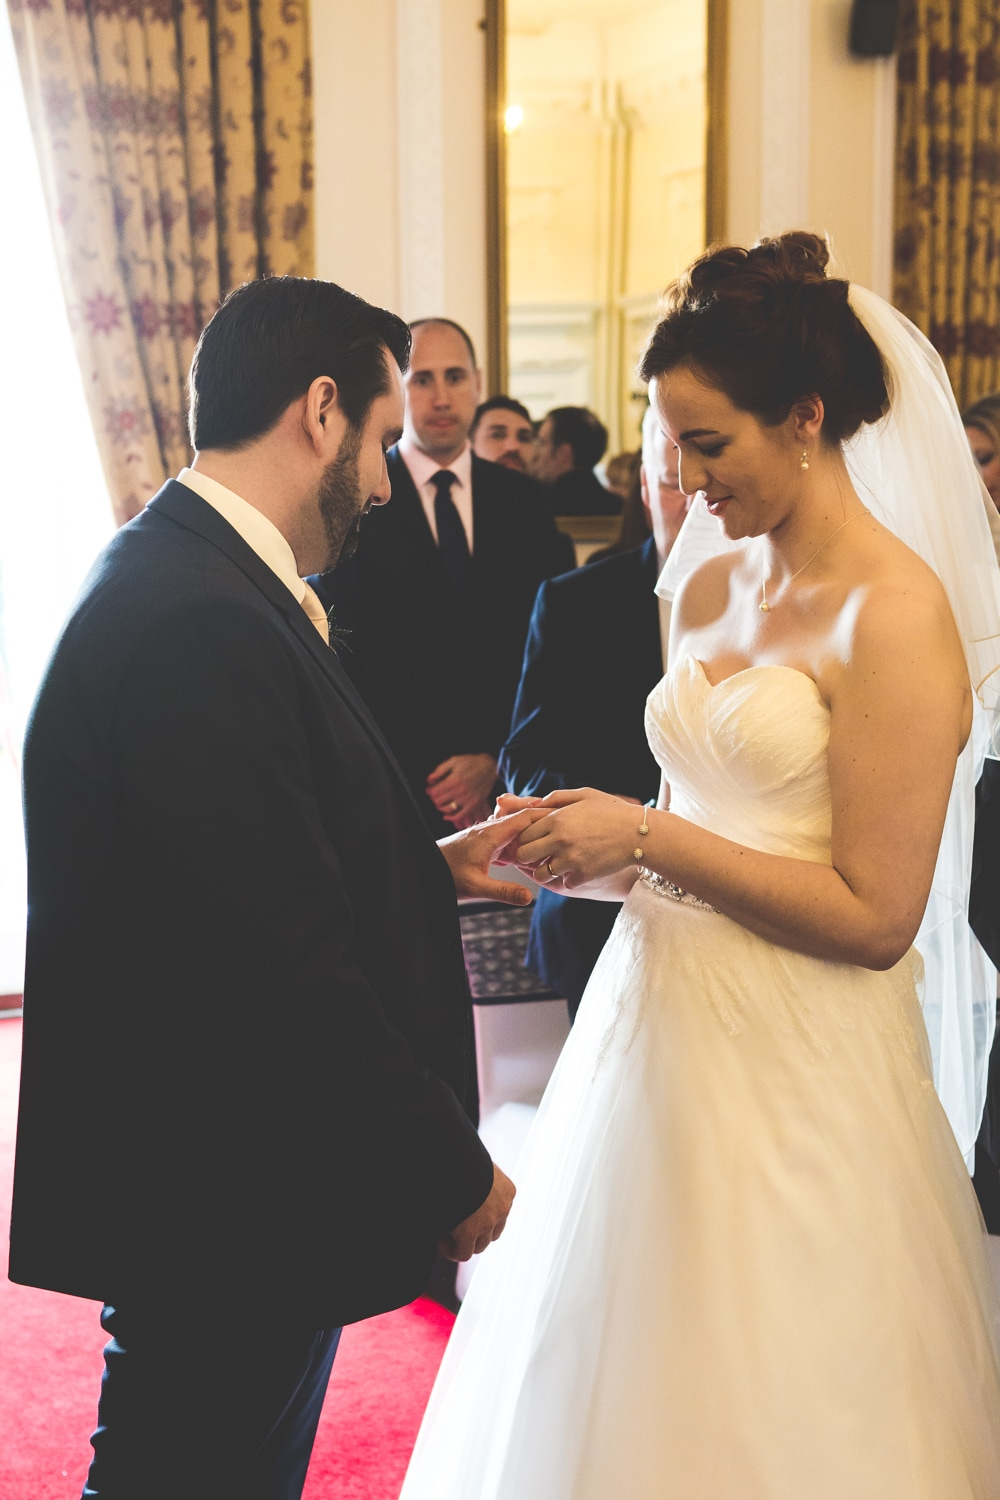 Exchanging the rings at walworth castle - Wedding photography by photographer Mat Robinson